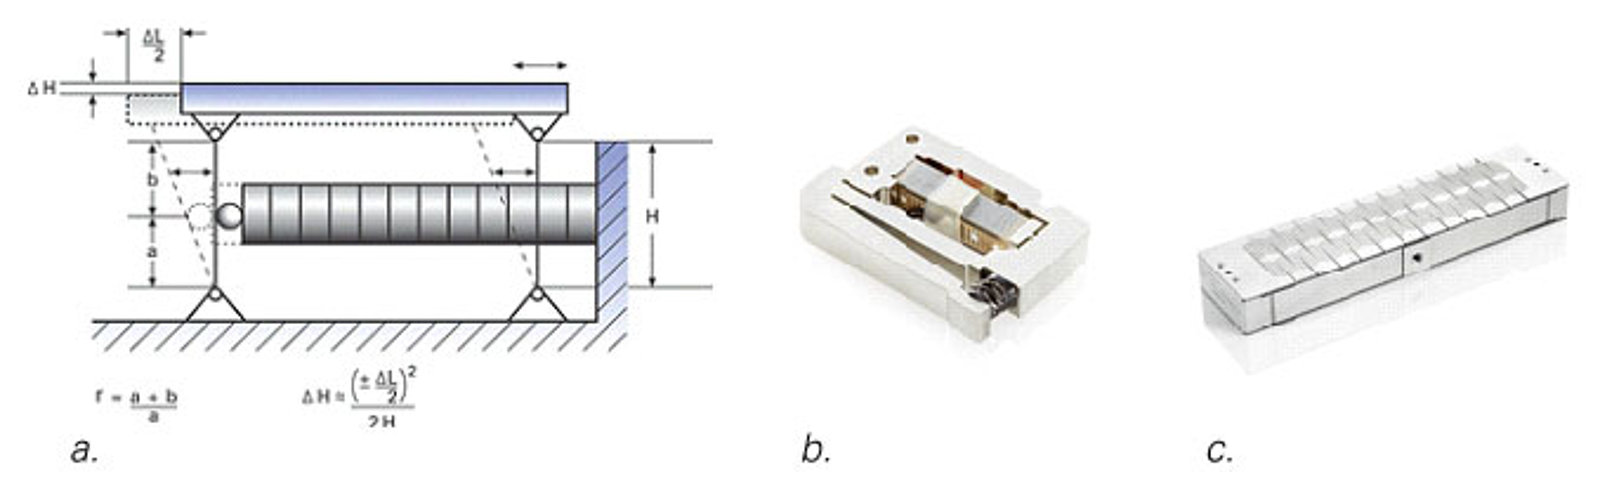 Advances In Piezo Actuators For High Frequency Duty Cycle Engineering Schematics Bicycle Fig 10 Flexure Guided Motion Amplified A Simplified Actuator Design Based On Parallelogram Guiding System And